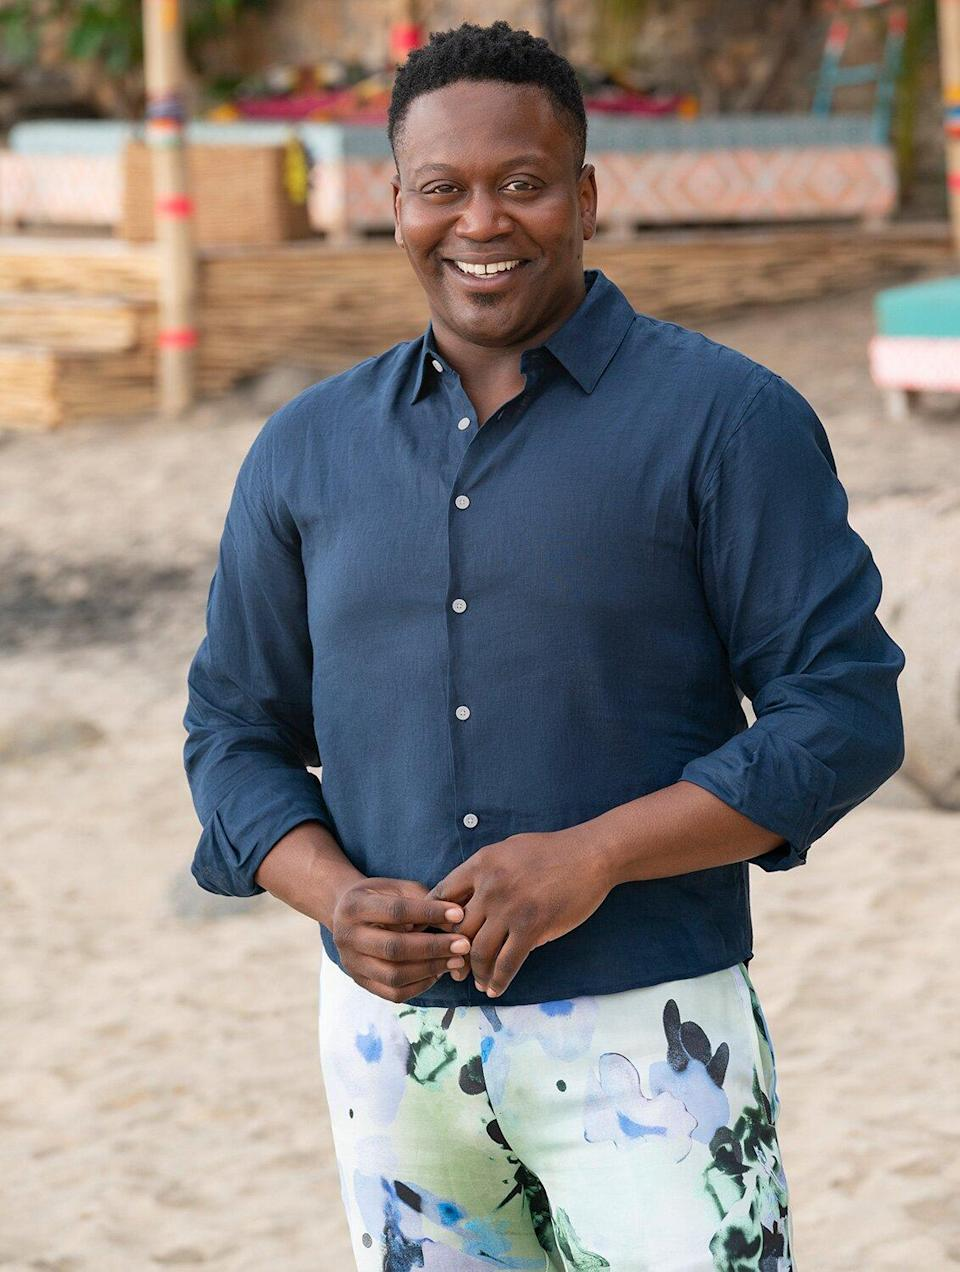 Tituss Burgess Bachelor in Paradise